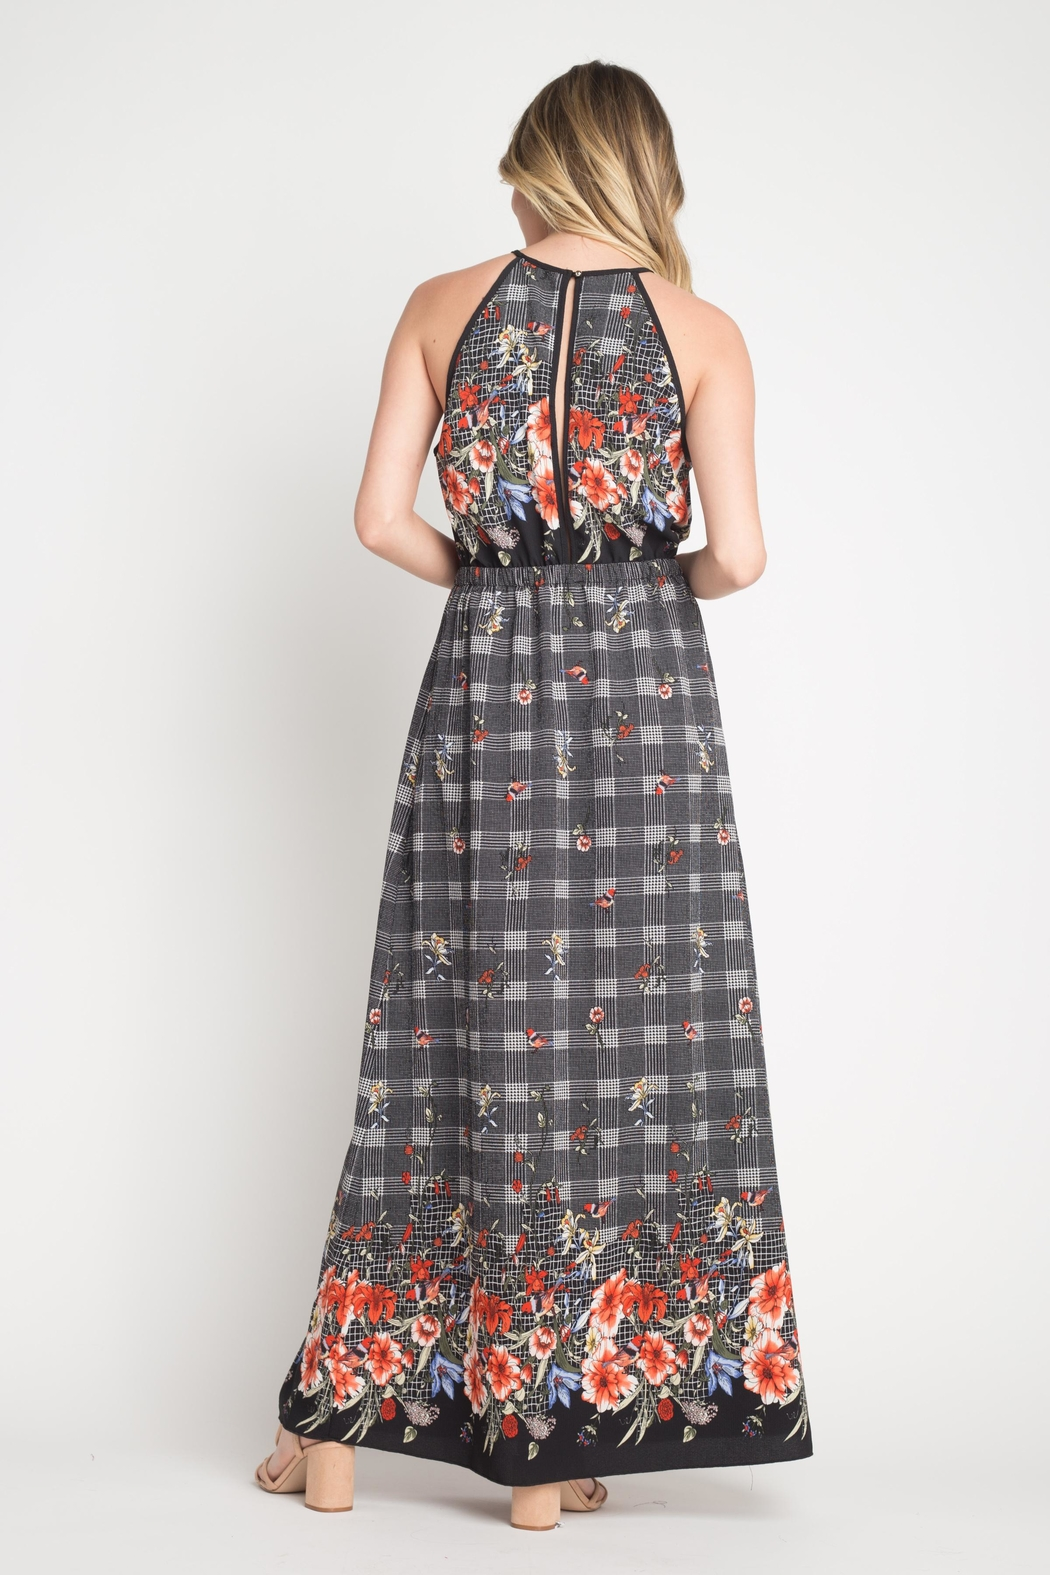 Miley and Molly Bubble Crepe Floral Plaid Print Hi Neck Maxi Dress - Back Cropped Image